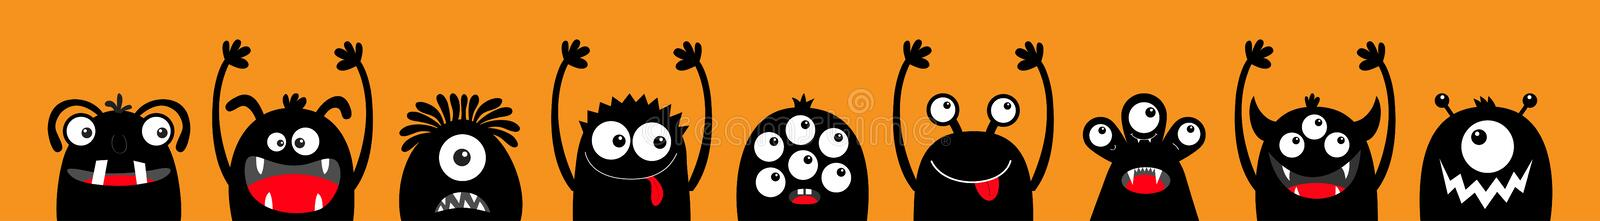 Happy Halloween. Monster black silhouette head face icon set line. Eyes, tongue, tooth fang, hands up. Cute cartoon kawaii scary. Funny baby character. Orange royalty free illustration